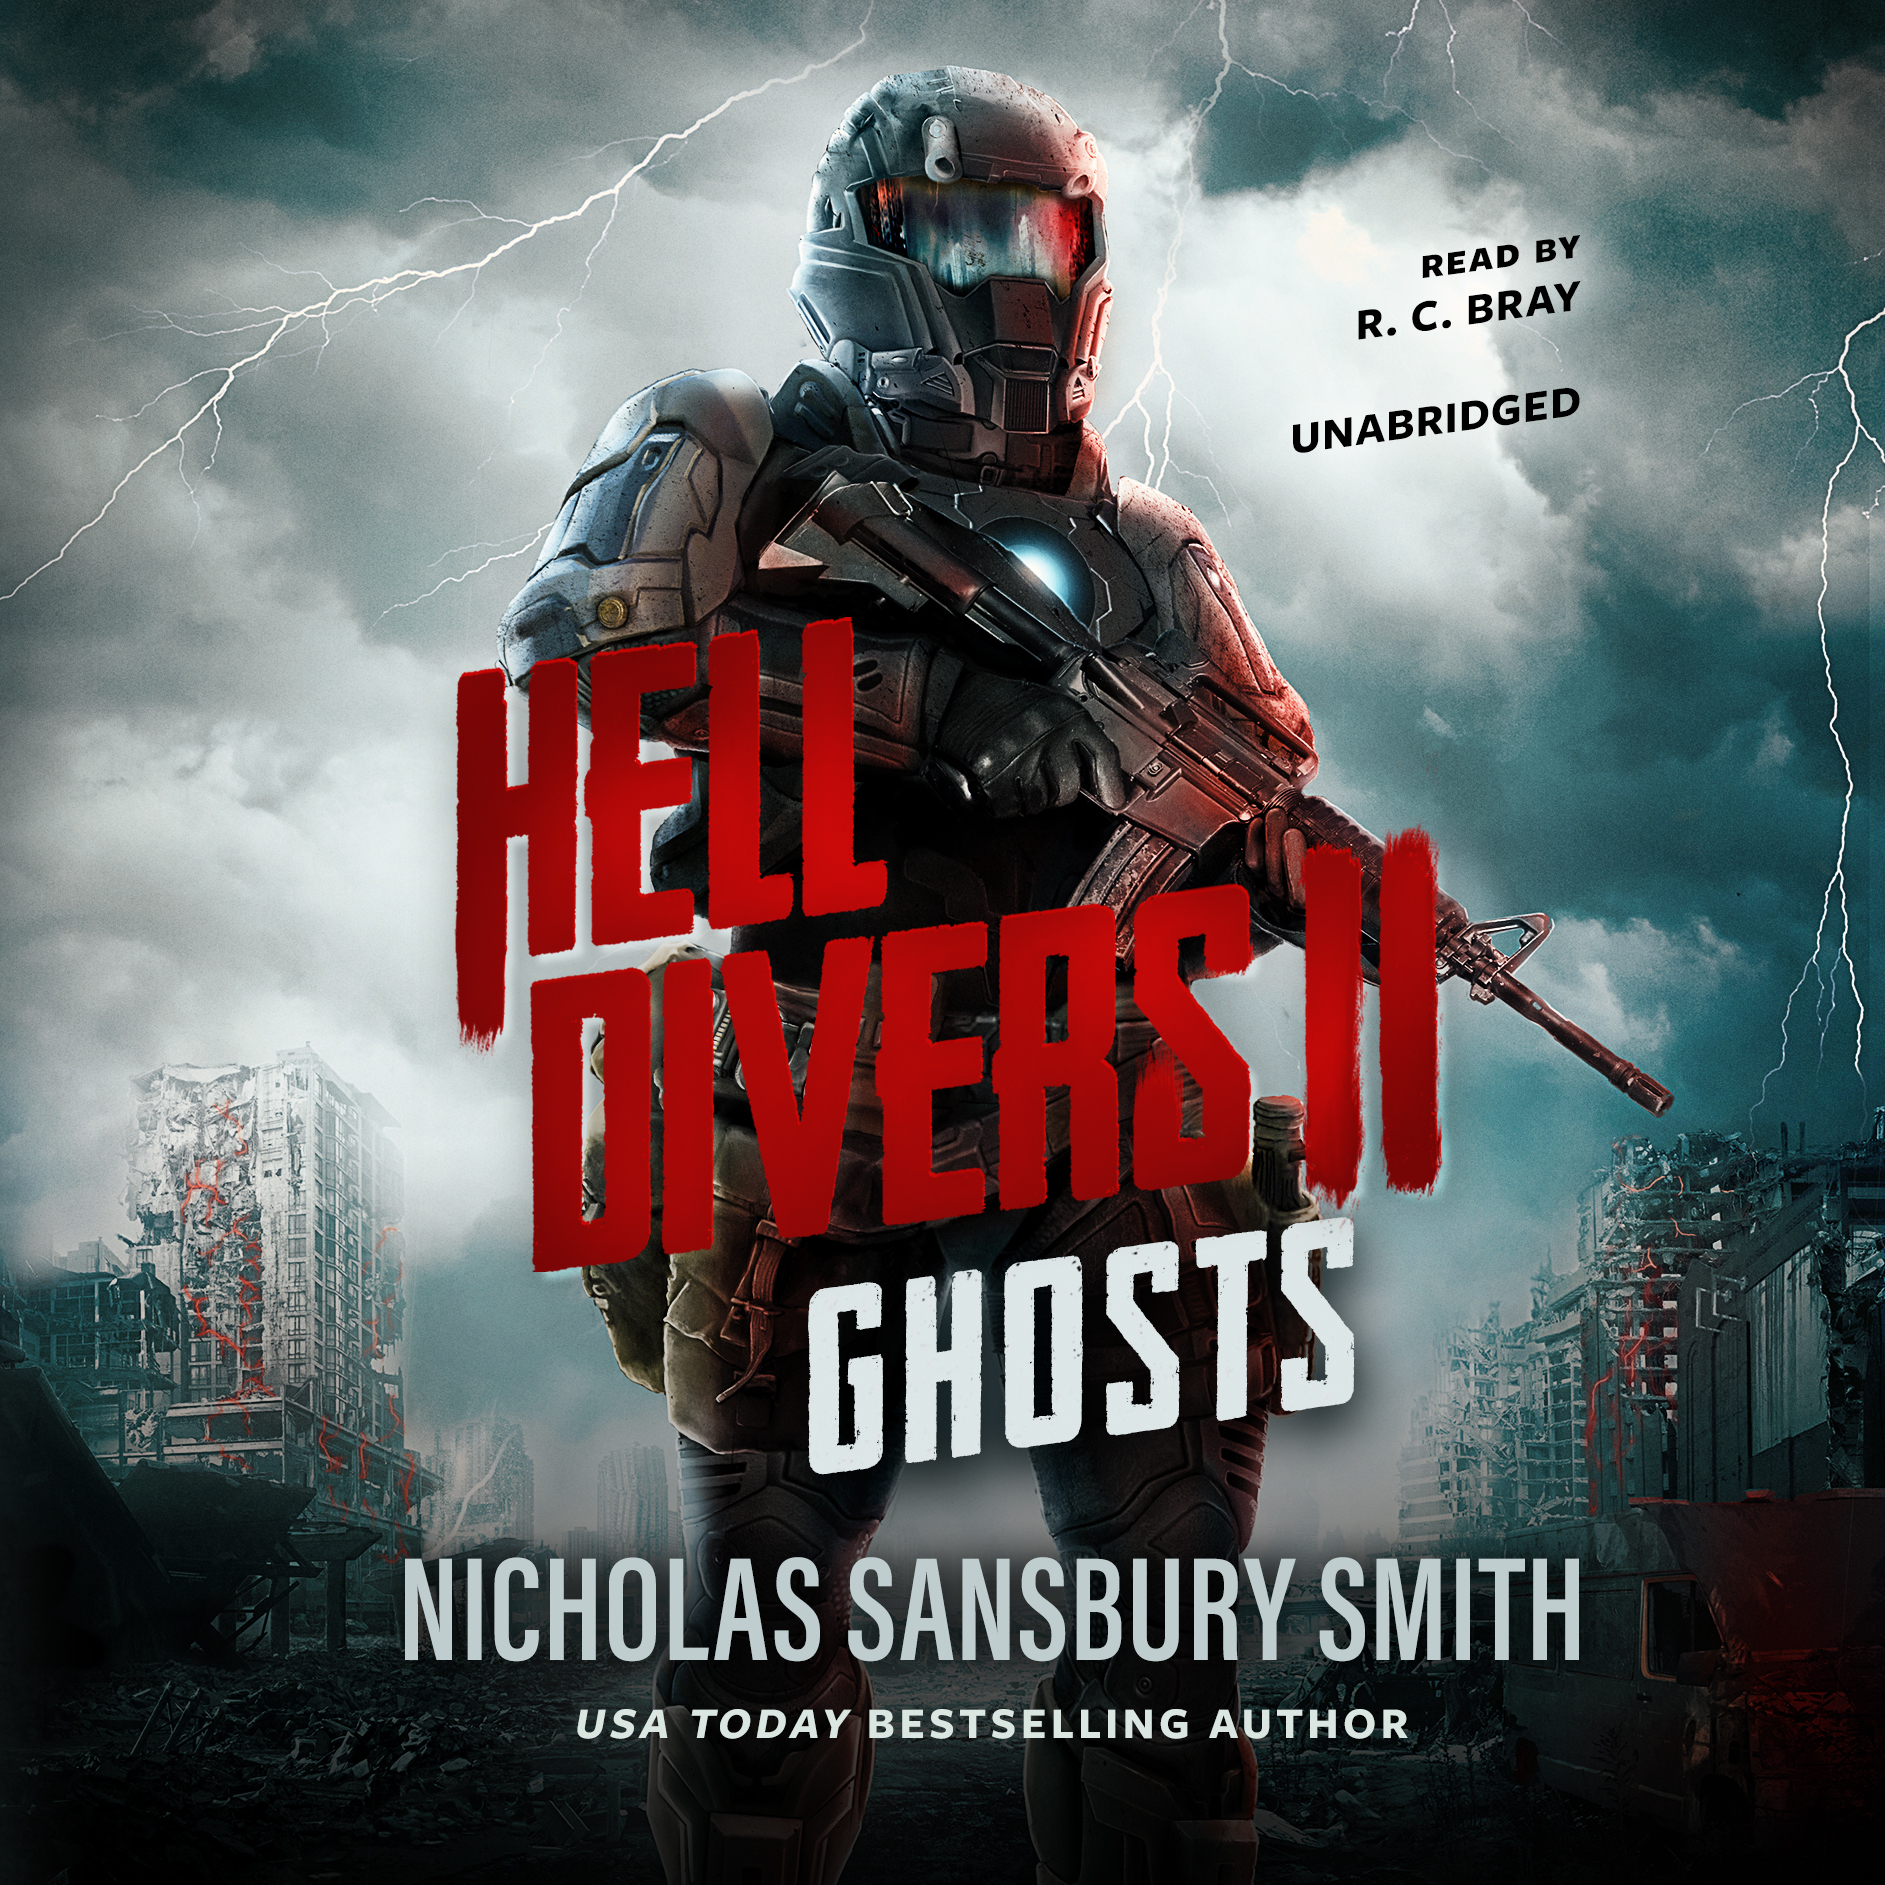 Printable Hell Divers II: Ghosts Audiobook Cover Art